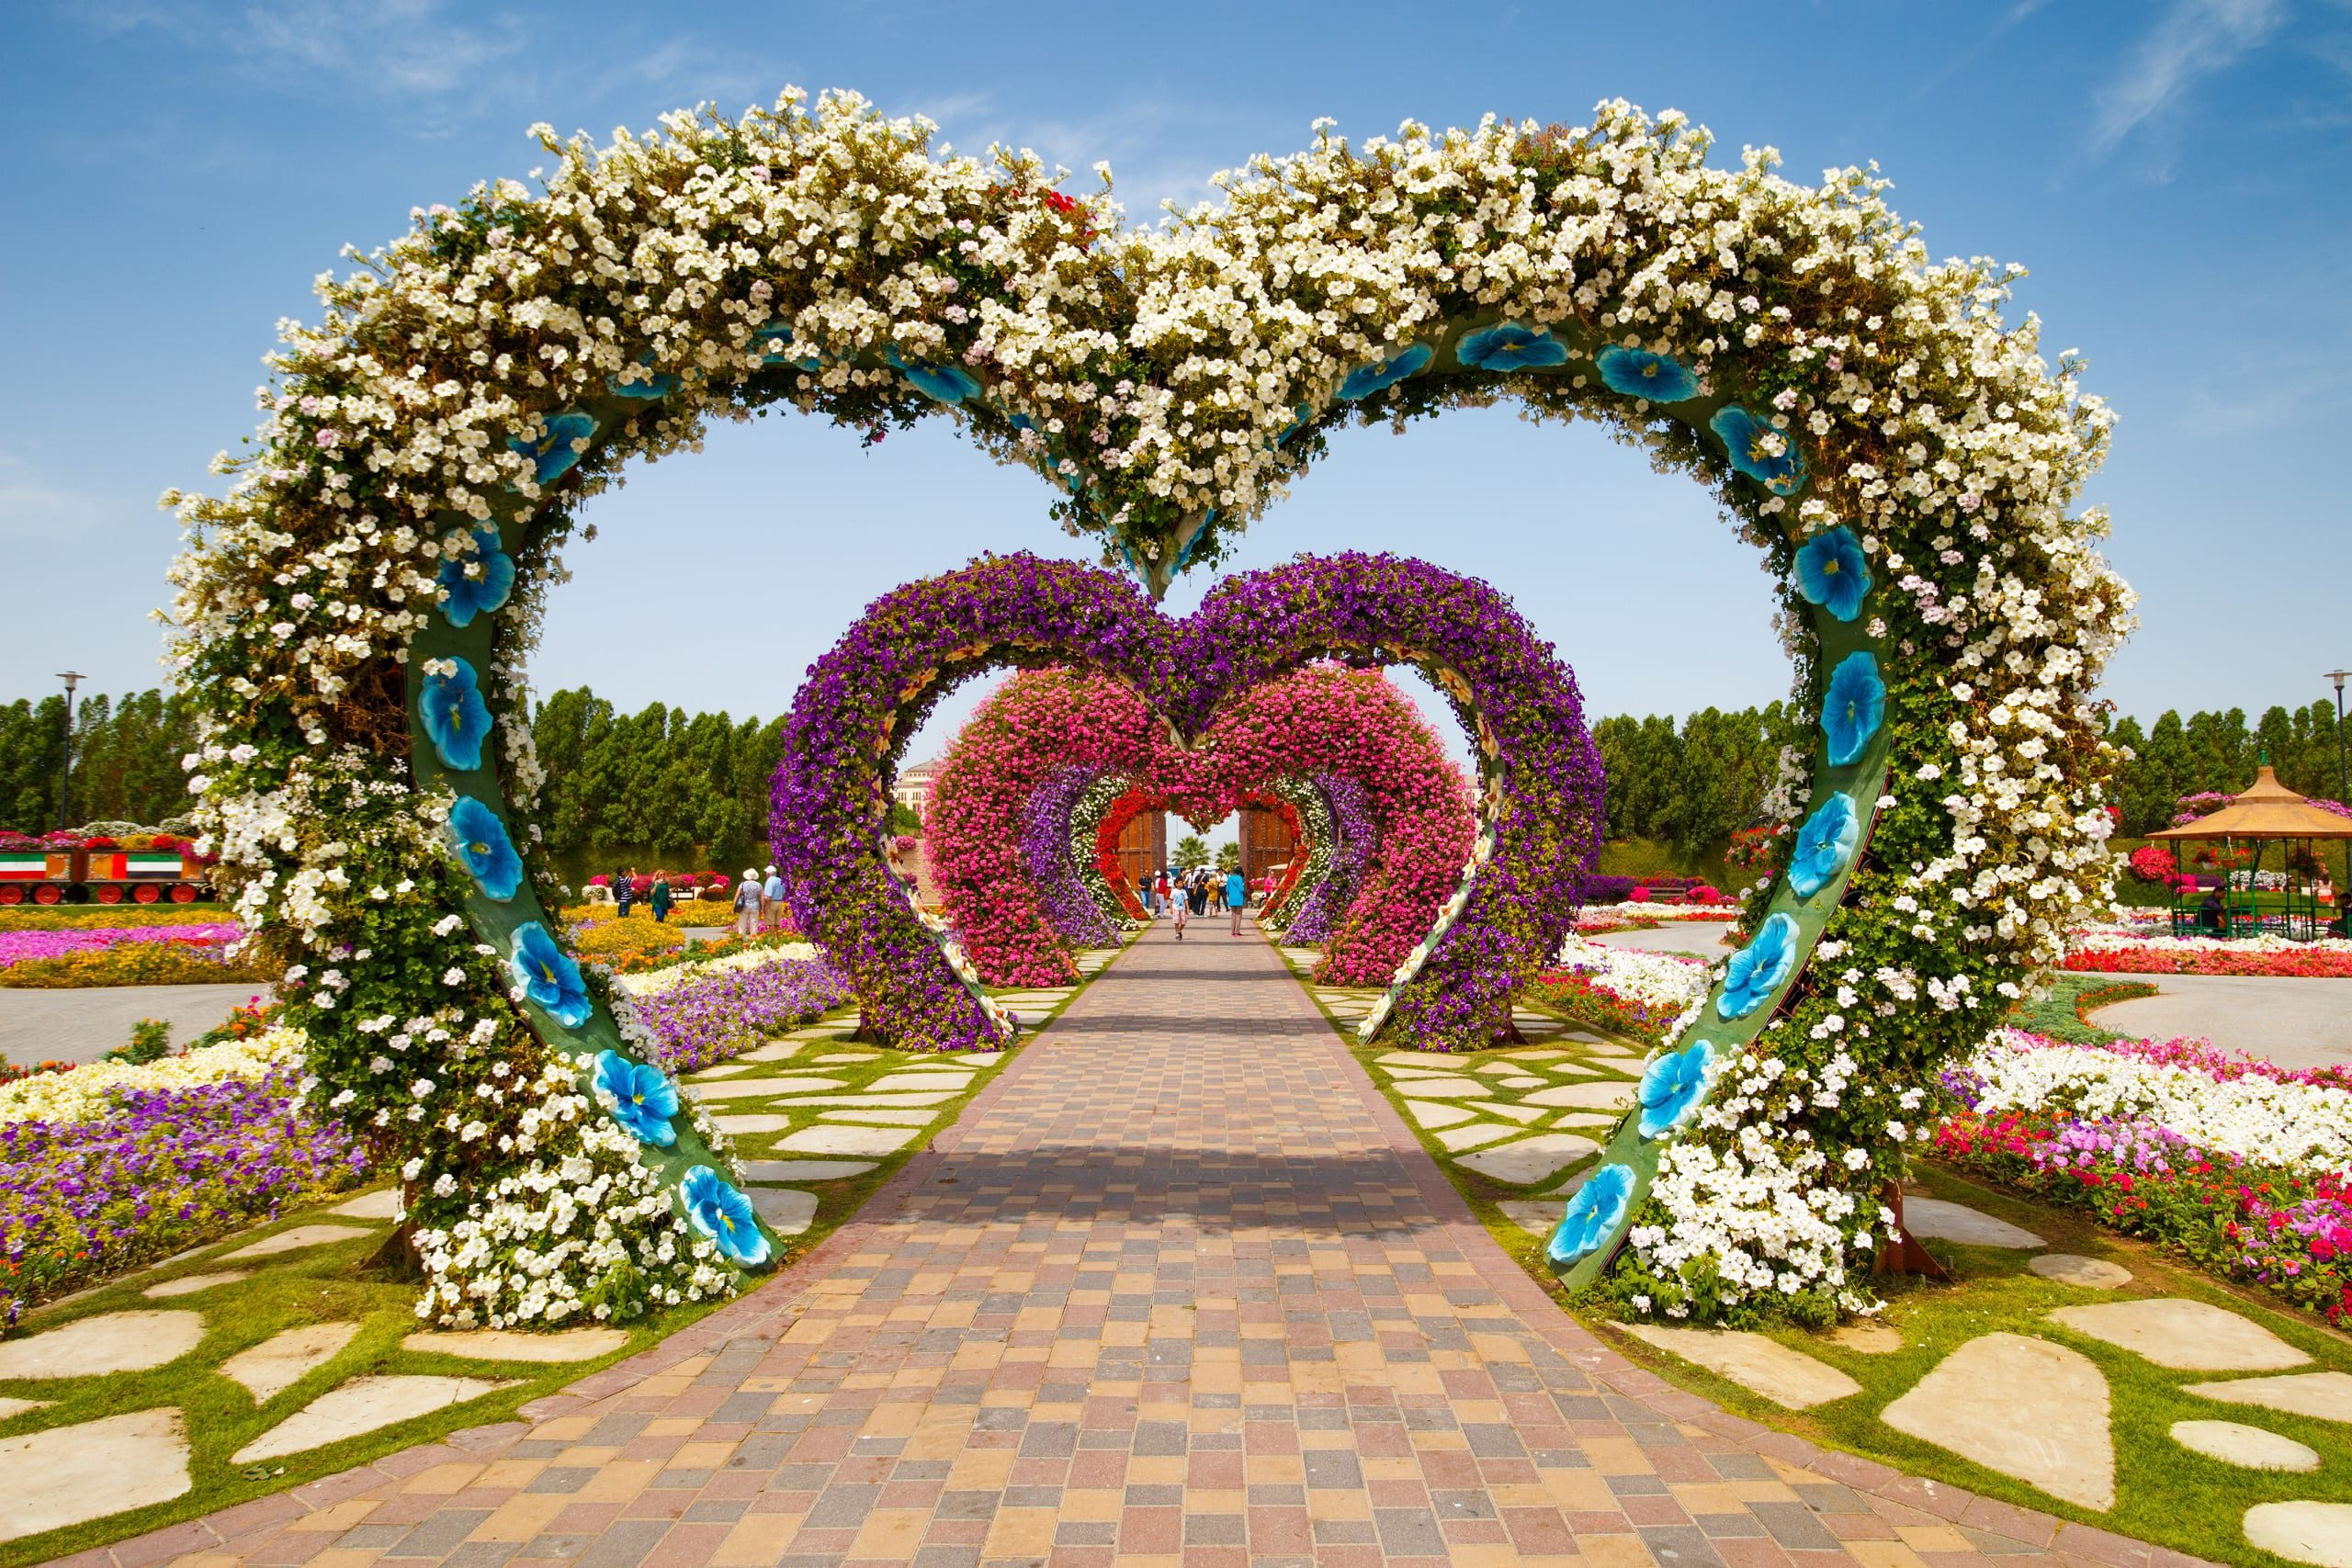 Hearts way in Dubai Miracle Garden in the UAE on March 28, 2015. It has over 45 million flowers.